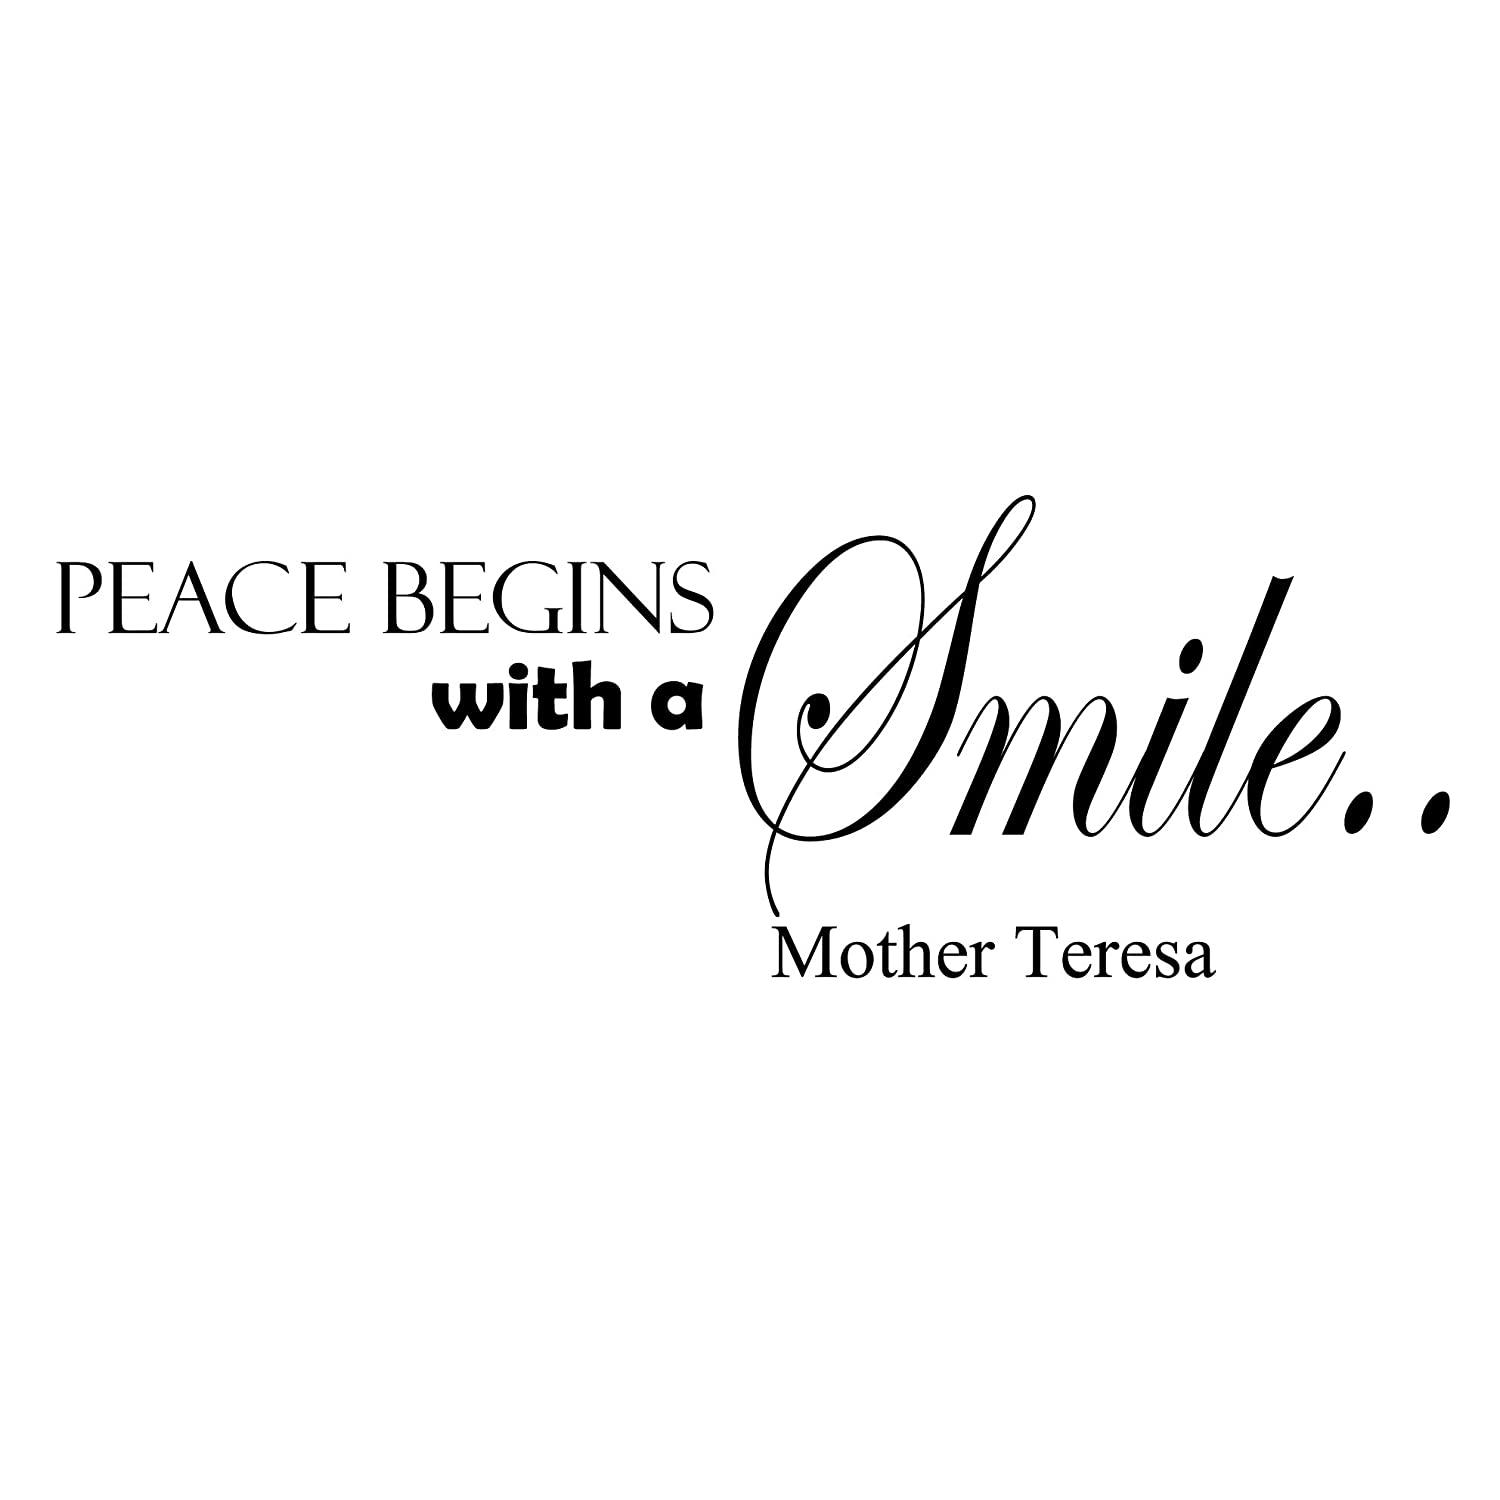 Amazon Com Vinyl Wall Decal Inspirational Quotes Peace Begins With A Smile Mother Teresa Quote Wall Sayings Vinyl Lettering Bedroom Home Decor Z172 Handmade